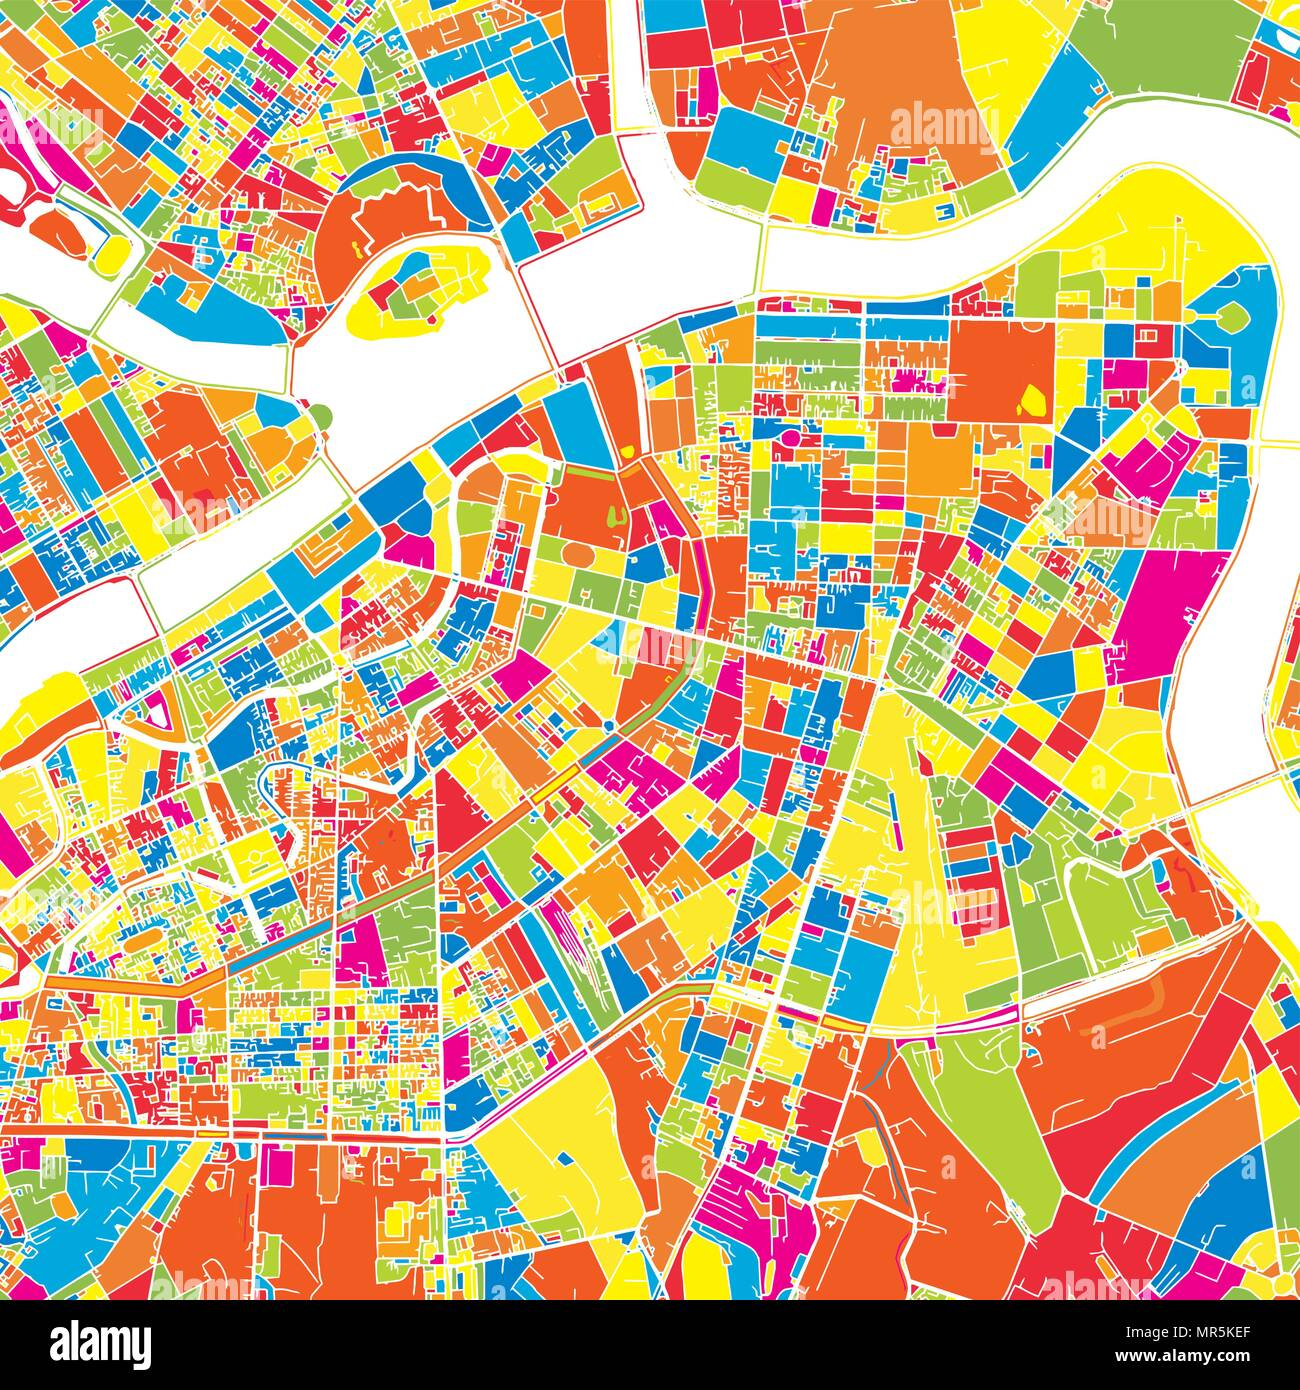 Saint Petersburg, Russia, colorful vector map. White streets ... on korea map, china map, poland map, australia map, united kingdom map, france map, iraq map, soviet union map, europe map, africa map, italy map, asia map, saudi arabia map, romania map, india map, baltic map, canada map, japan map, eurasia map, germany map,